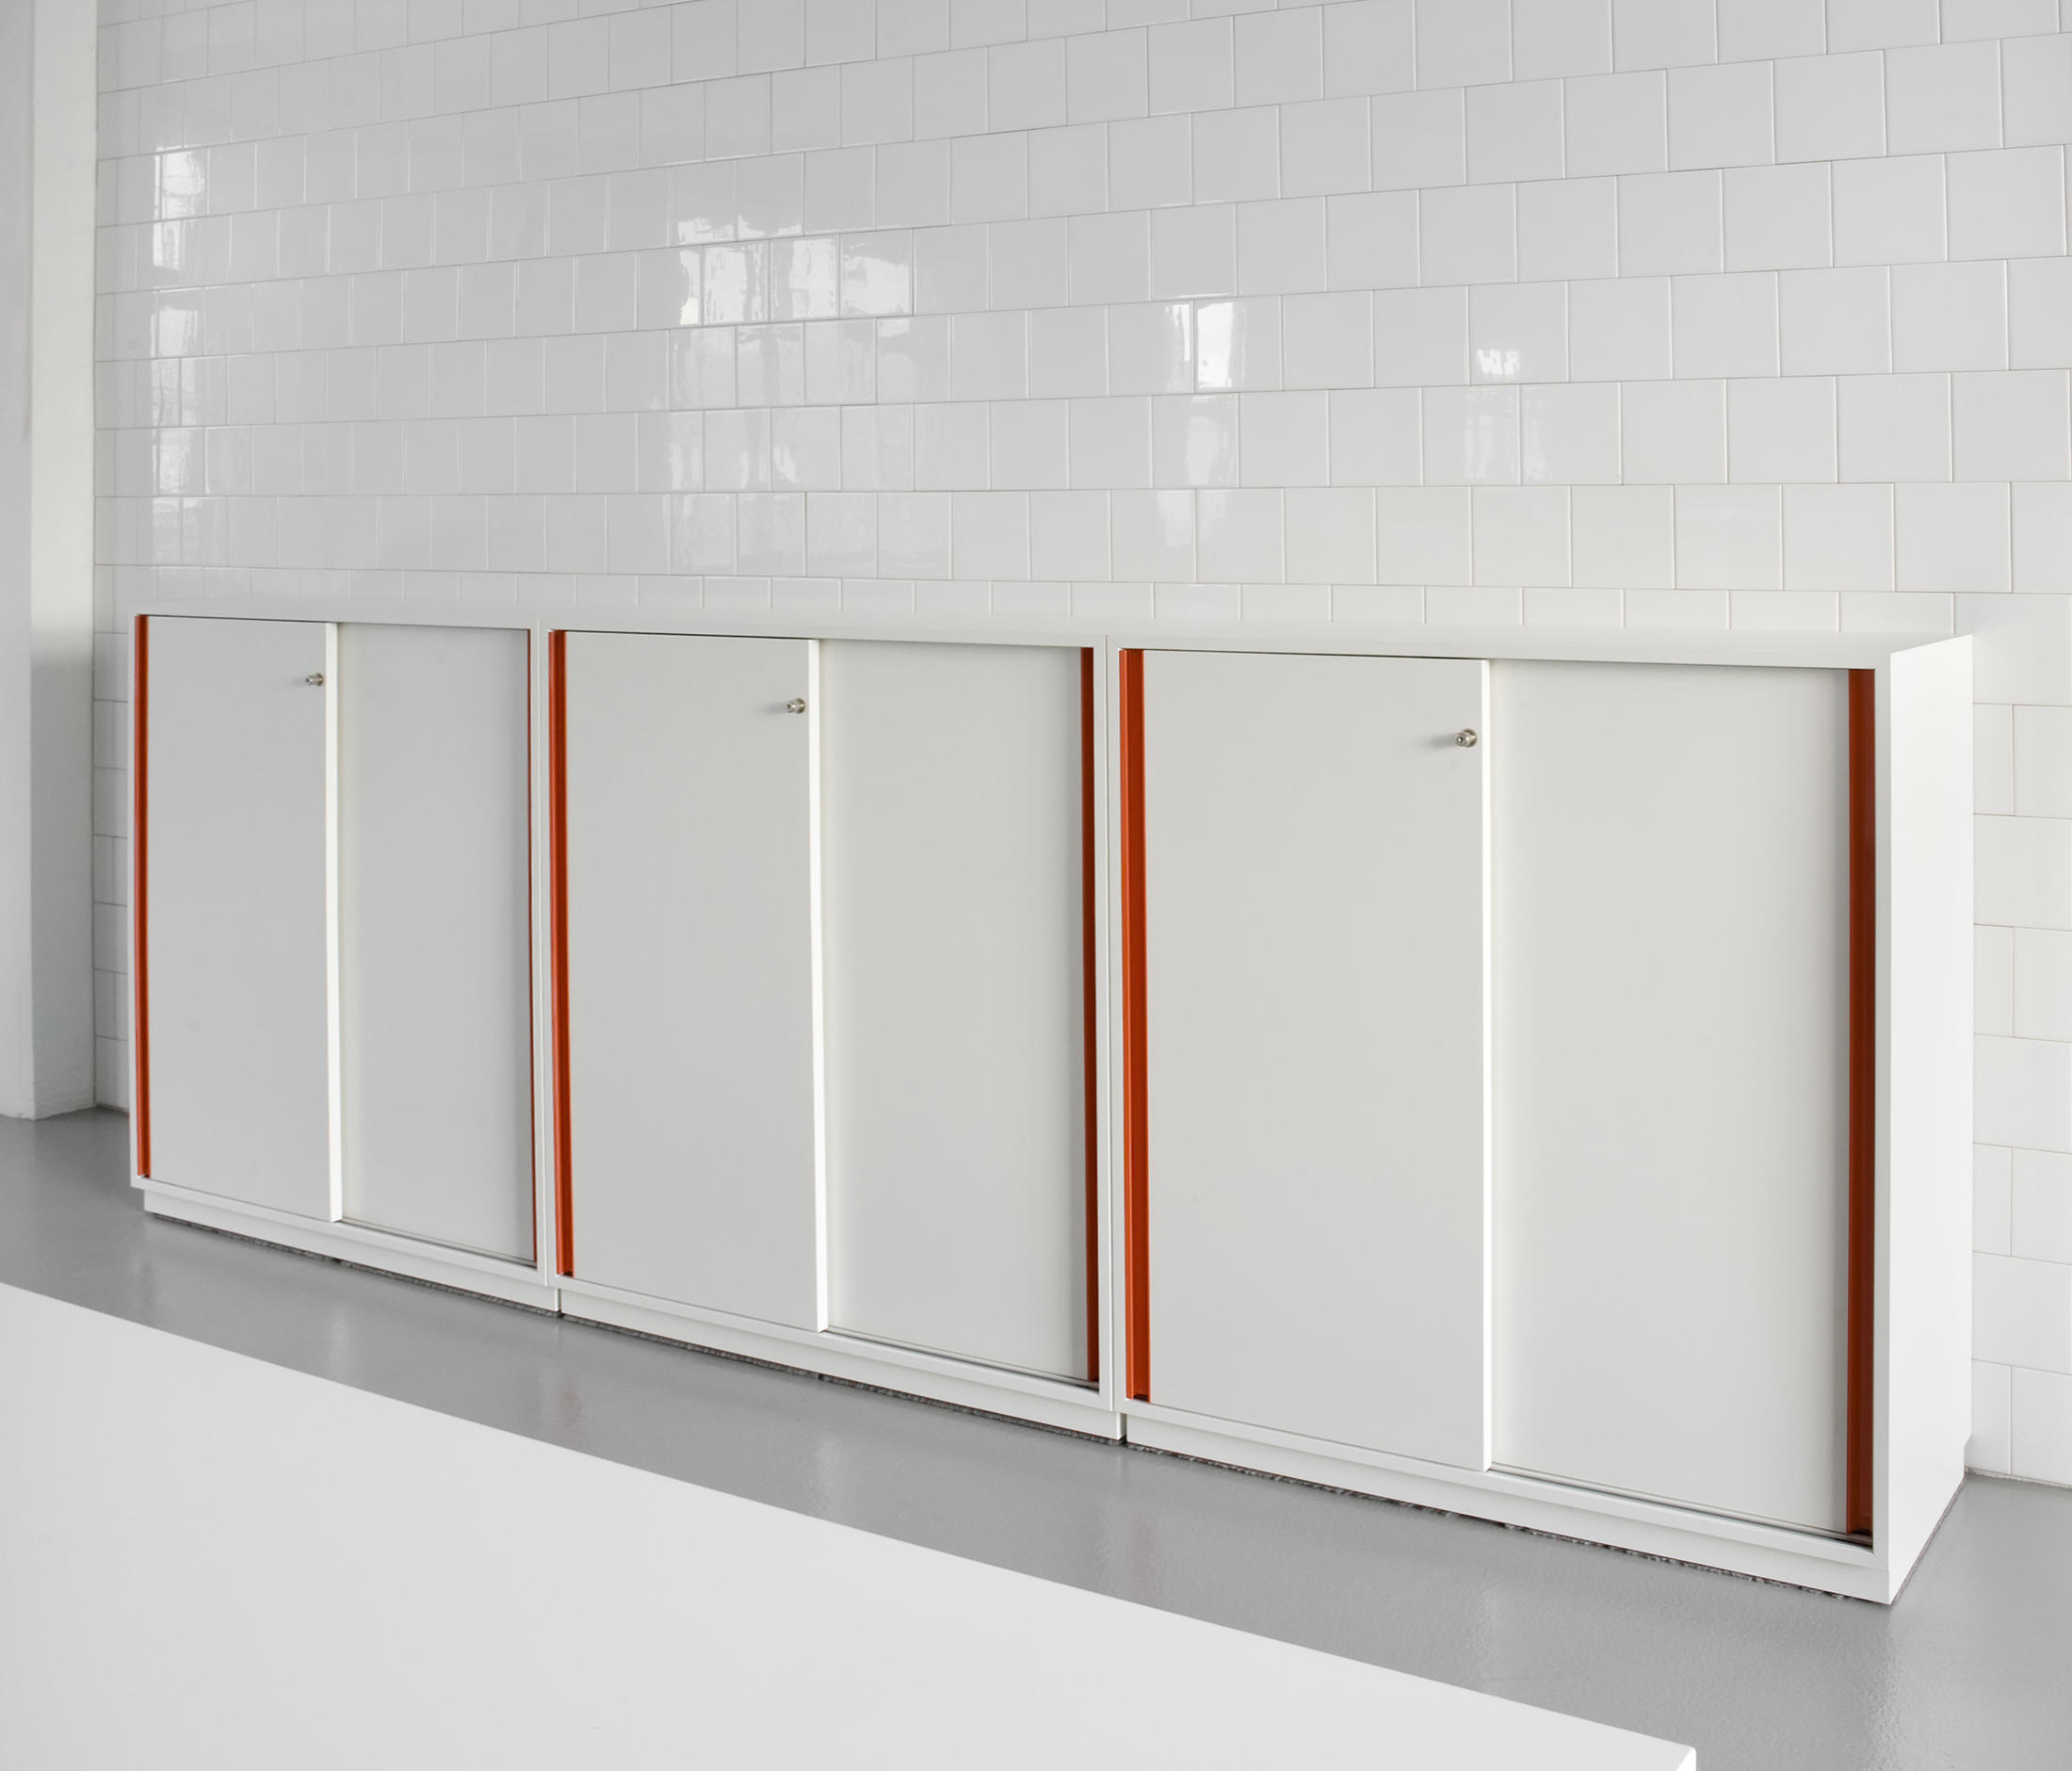 Merveilleux DO4500 Sliding Door Cabinet System By Designoffice | Cabinets ...